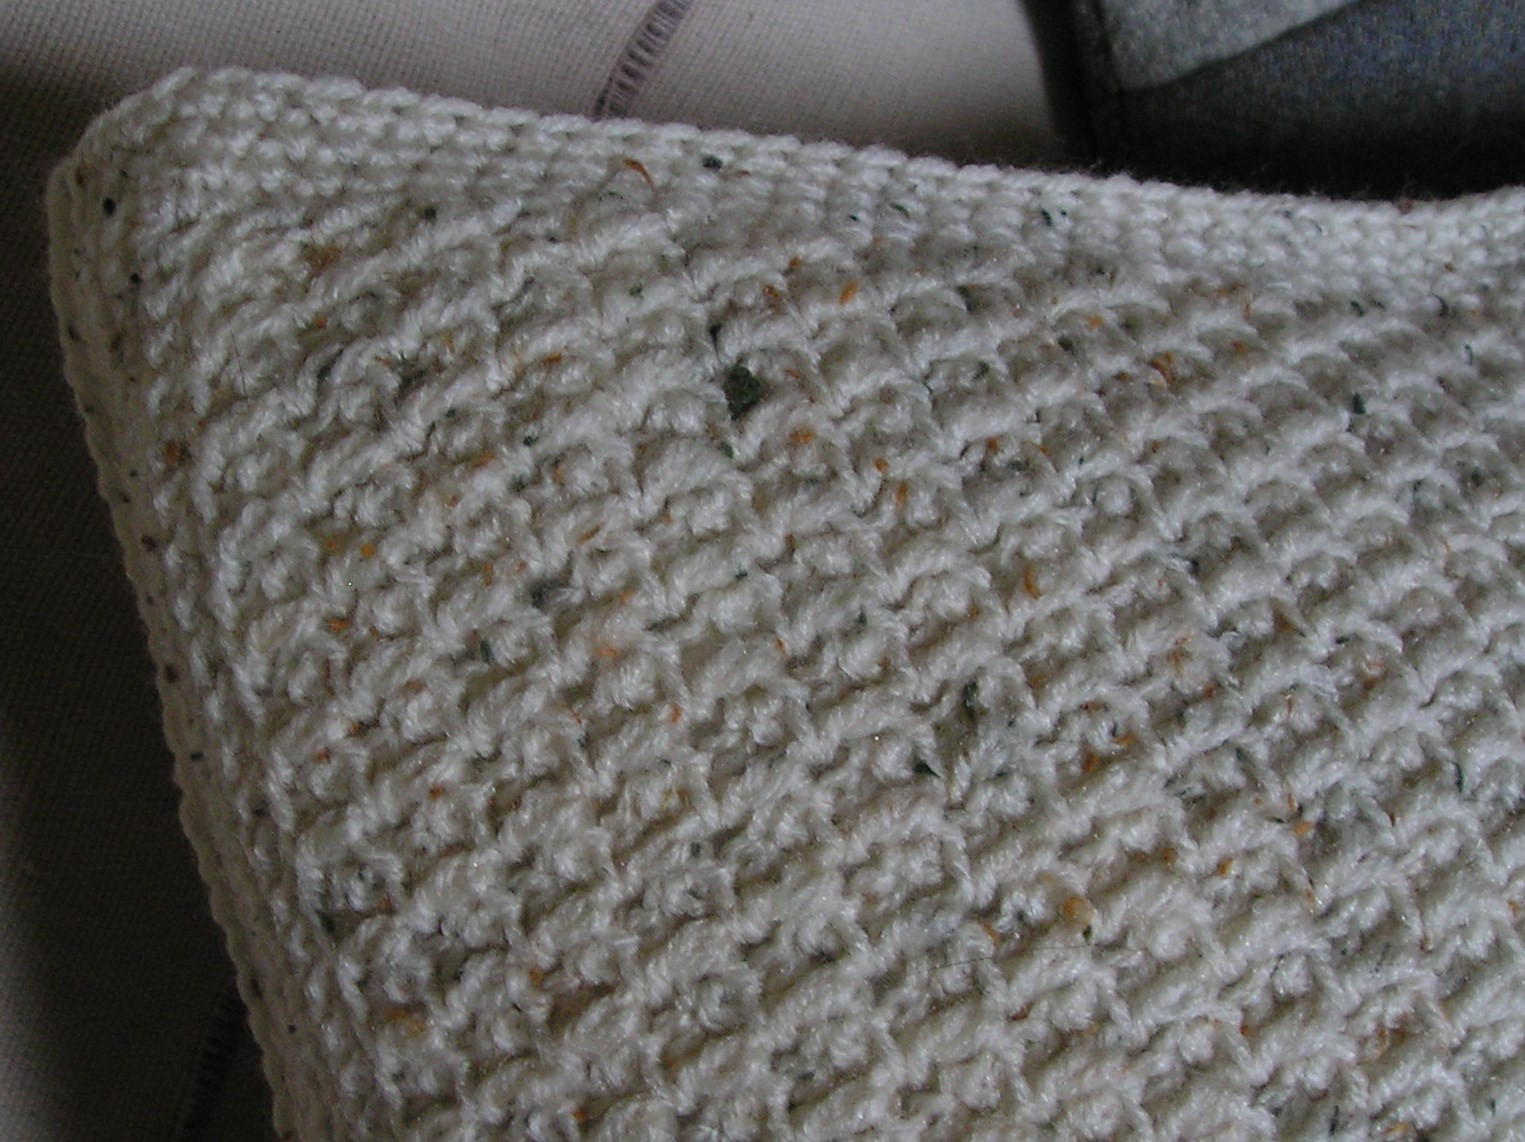 Elegant Crochet Cable Stitches Free Crochet Stitches Of Awesome 41 Models Free Crochet Stitches